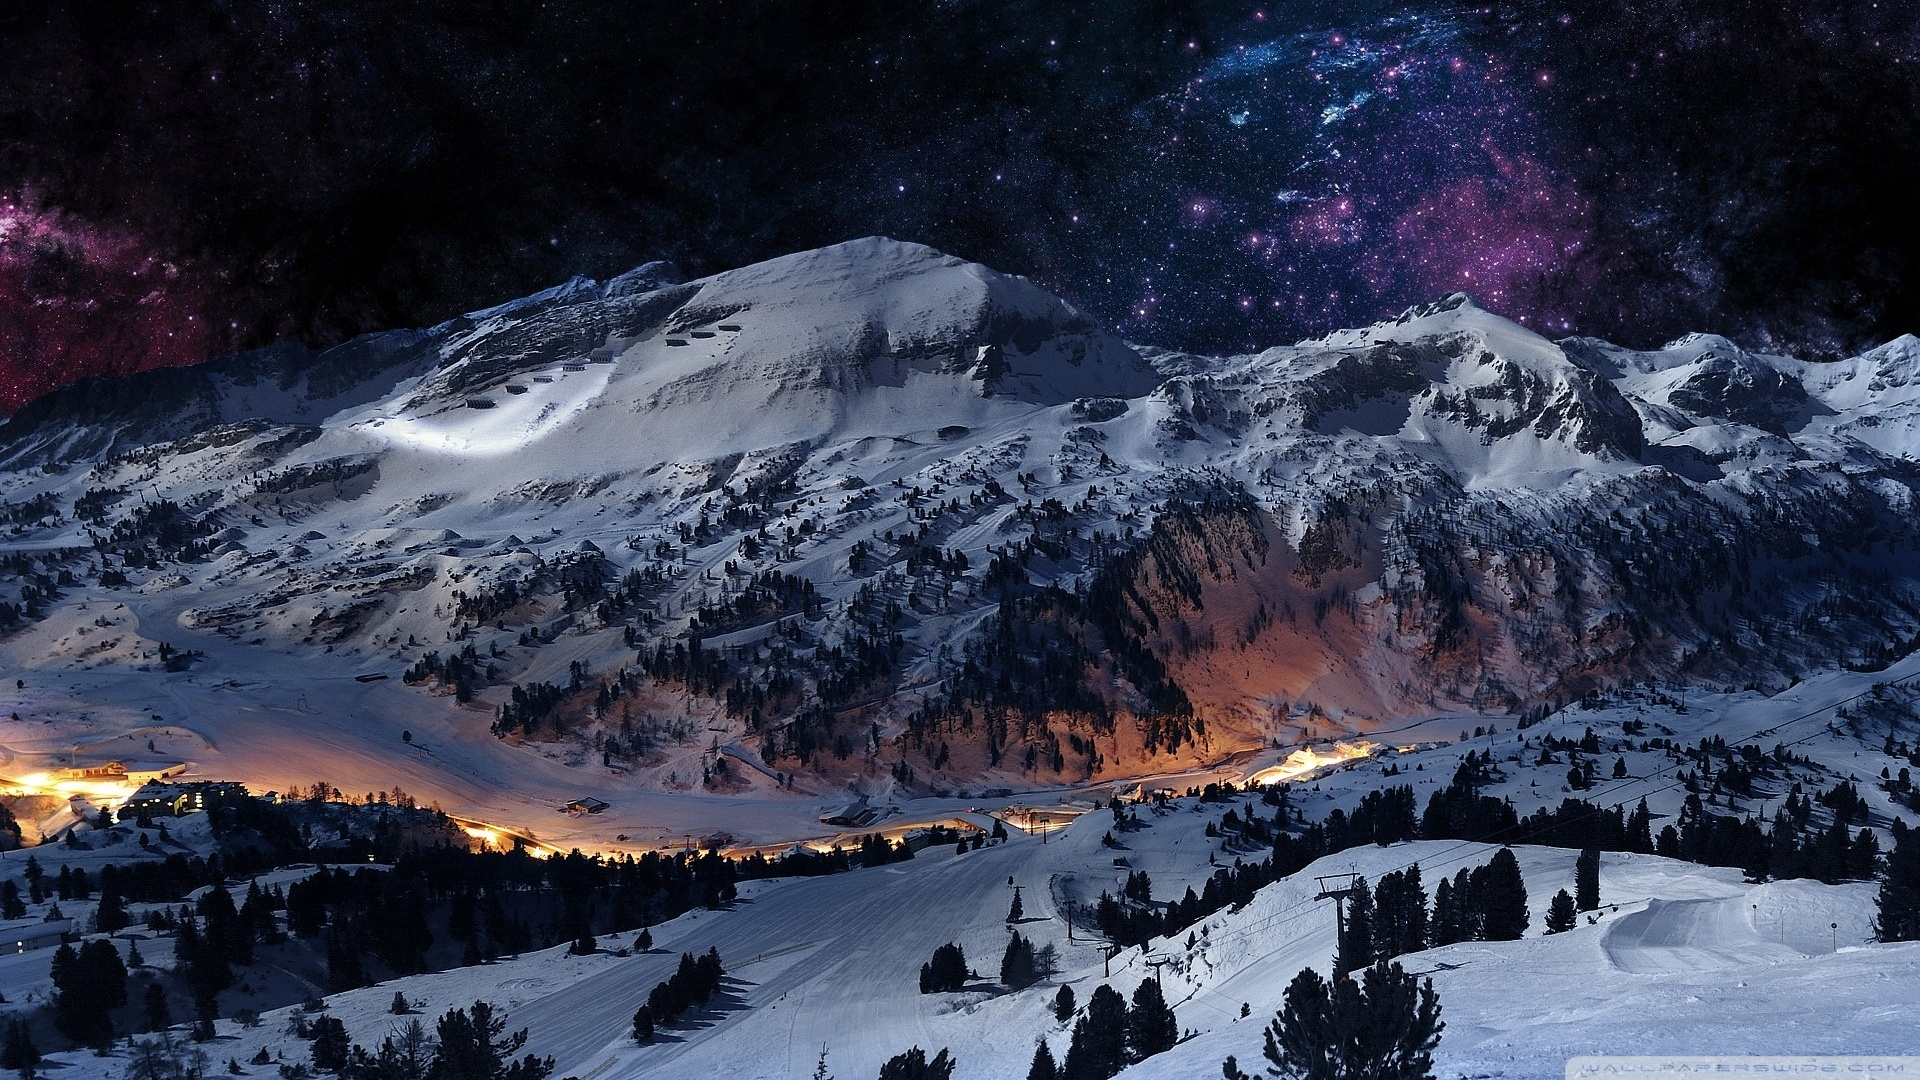 Wallpaper Snow Night